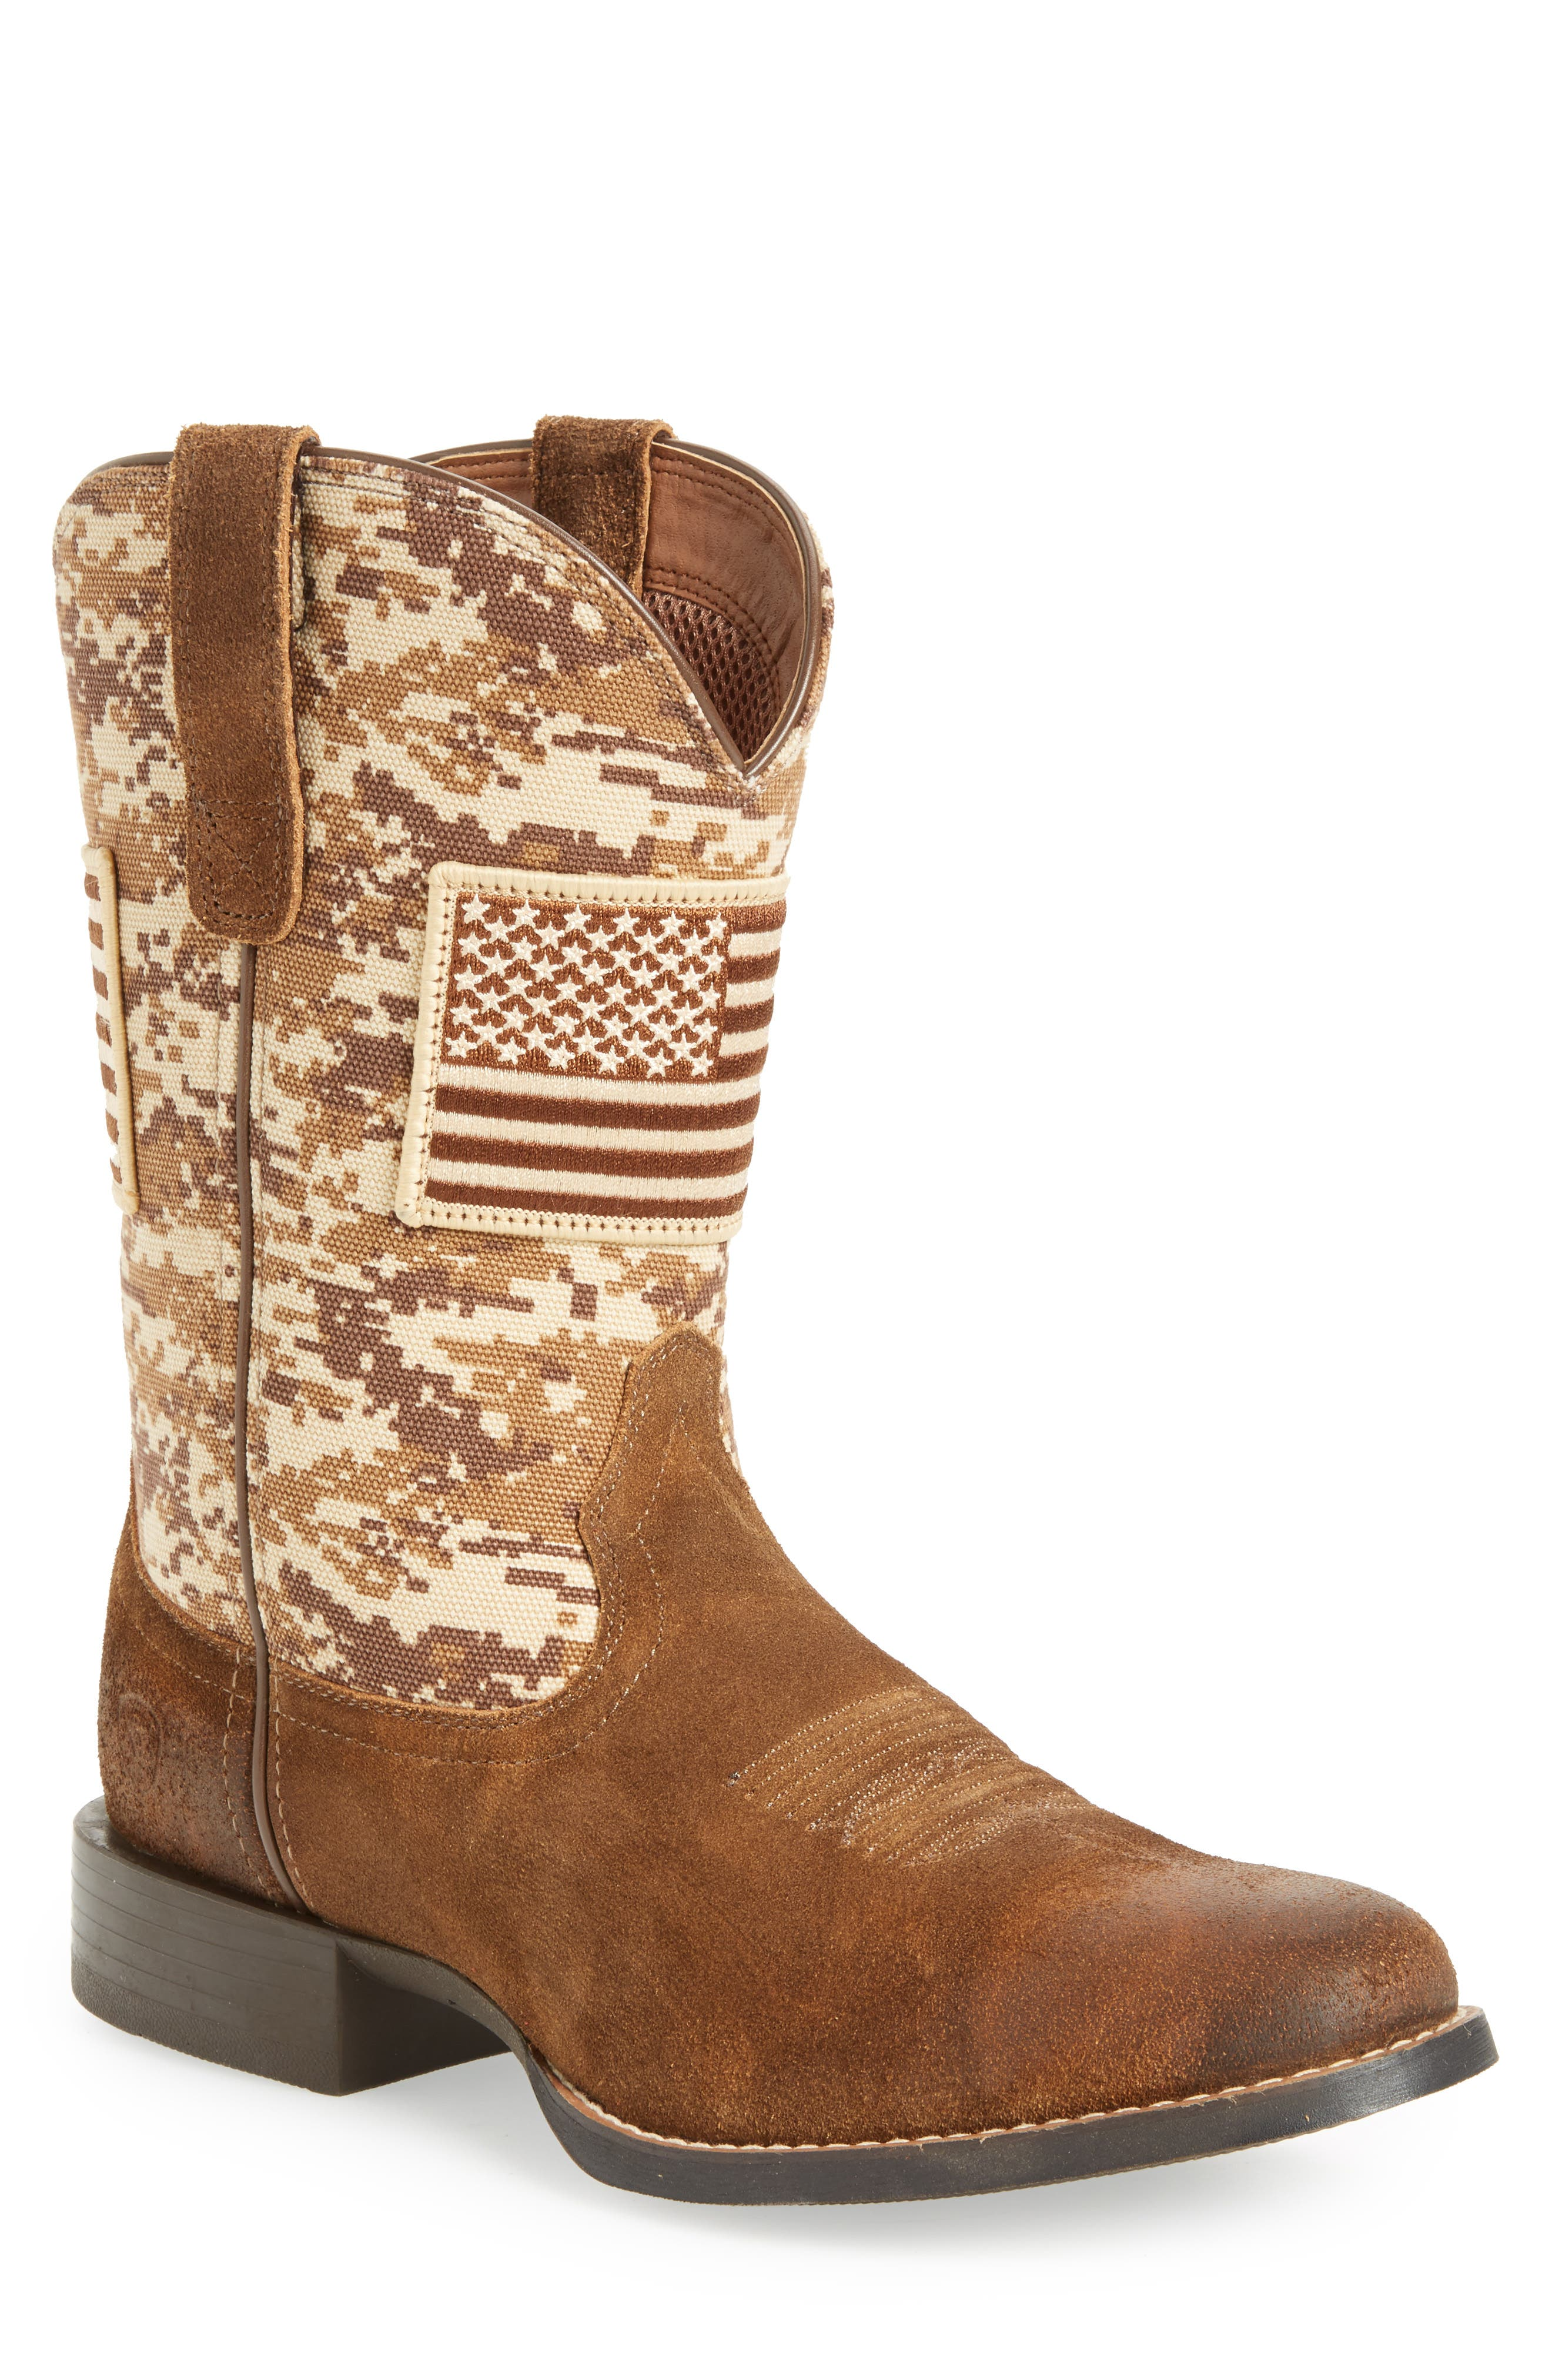 Ariat Sport Patriot Cowboy Boot- Brown